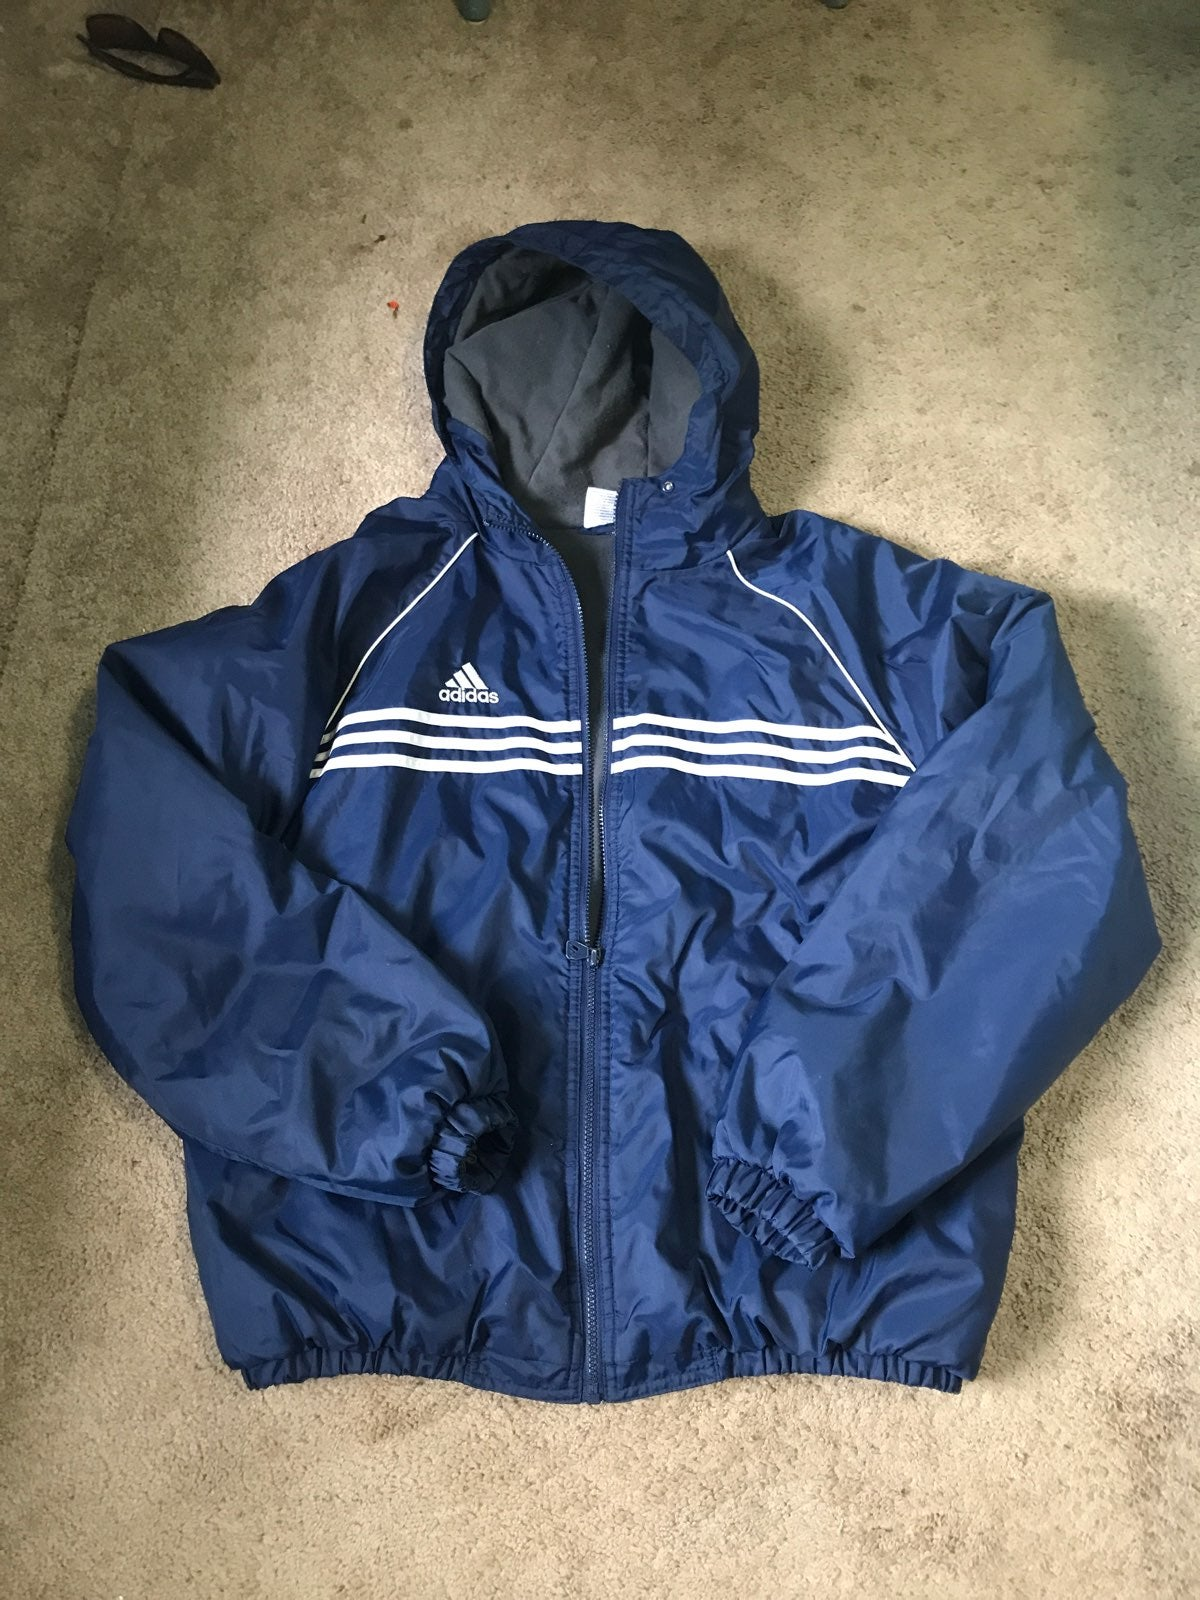 Men's Medium Adidas Winter Coat